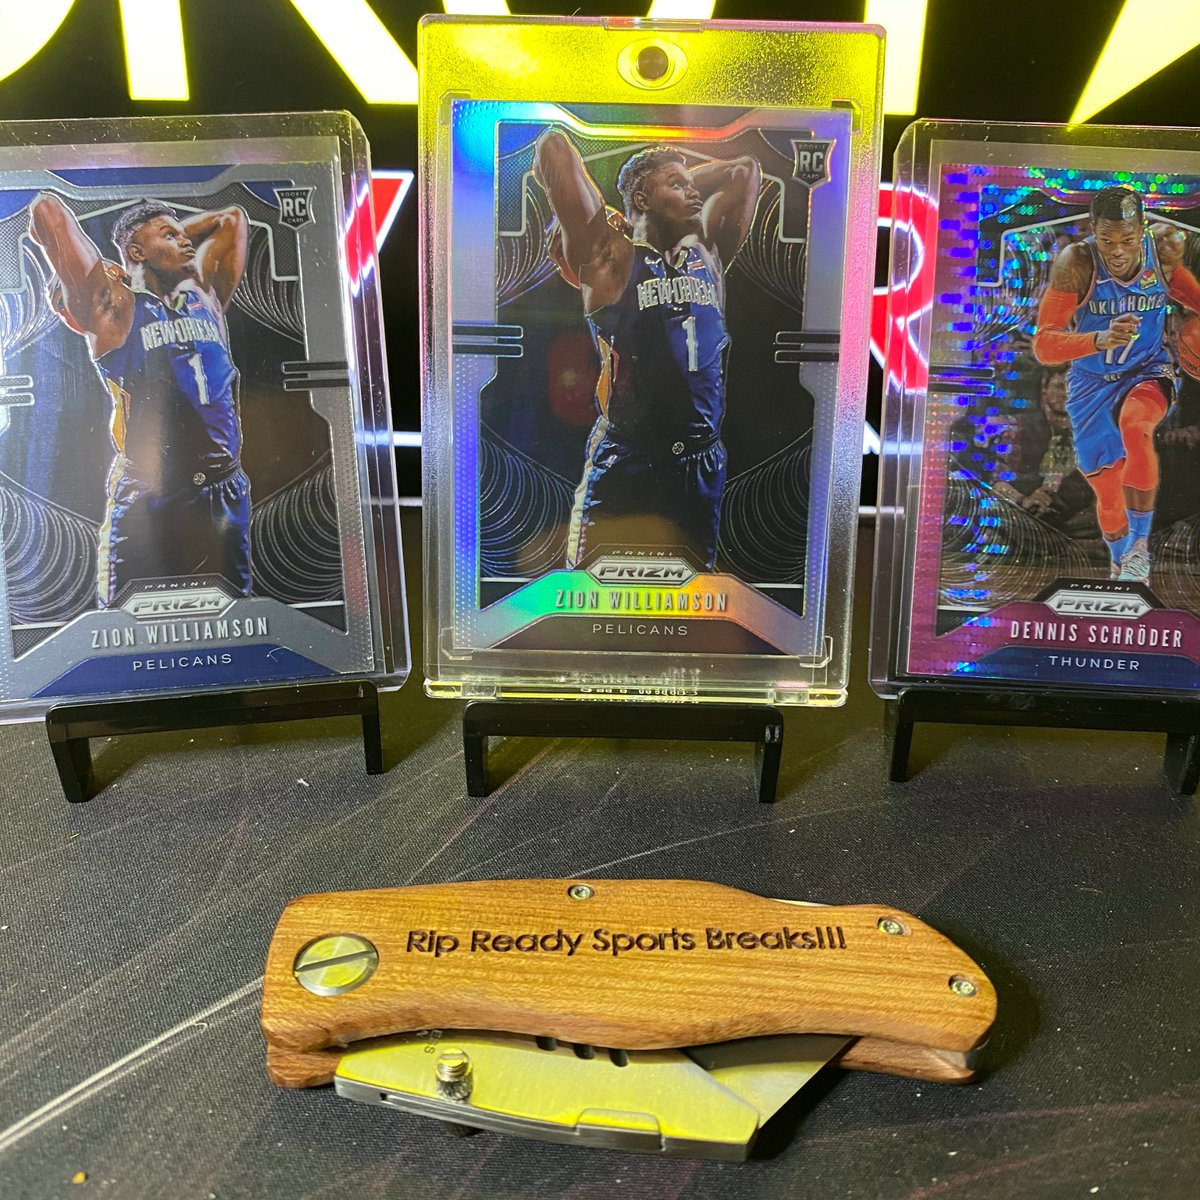 Ho-Hum...Just another ZION WILLIAMSON  appearance in our latest break of 2019-20 @PaniniAmerica Prizm Basketball. A base AND a silver! Not to mention this gorgeous Dennis Schroder #'d to 42 pic.twitter.com/caueAusAH2